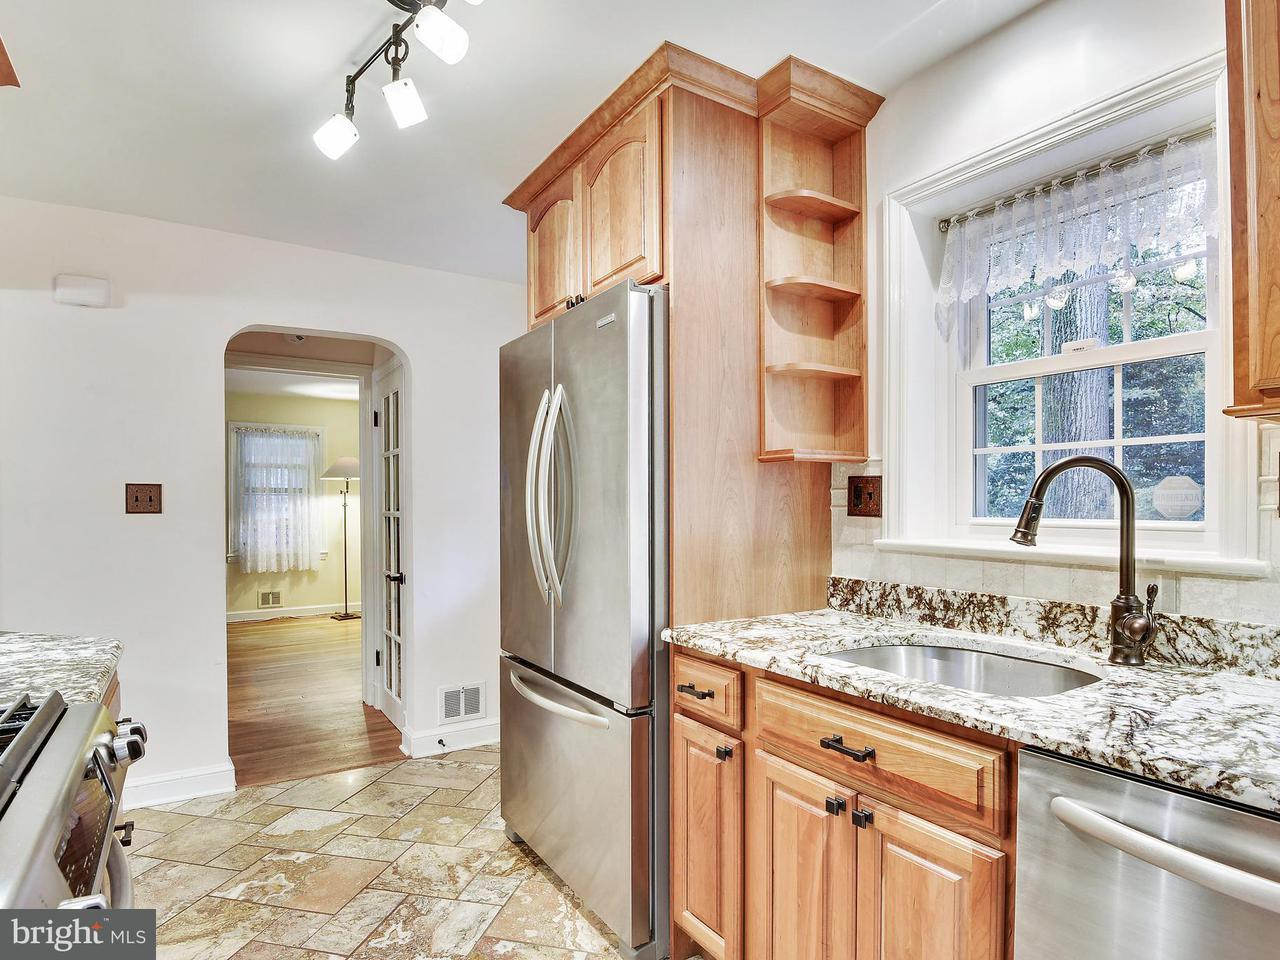 Single Family Home for Sale at 409 HILLMOOR Drive 409 HILLMOOR Drive Silver Spring, Maryland 20901 United States